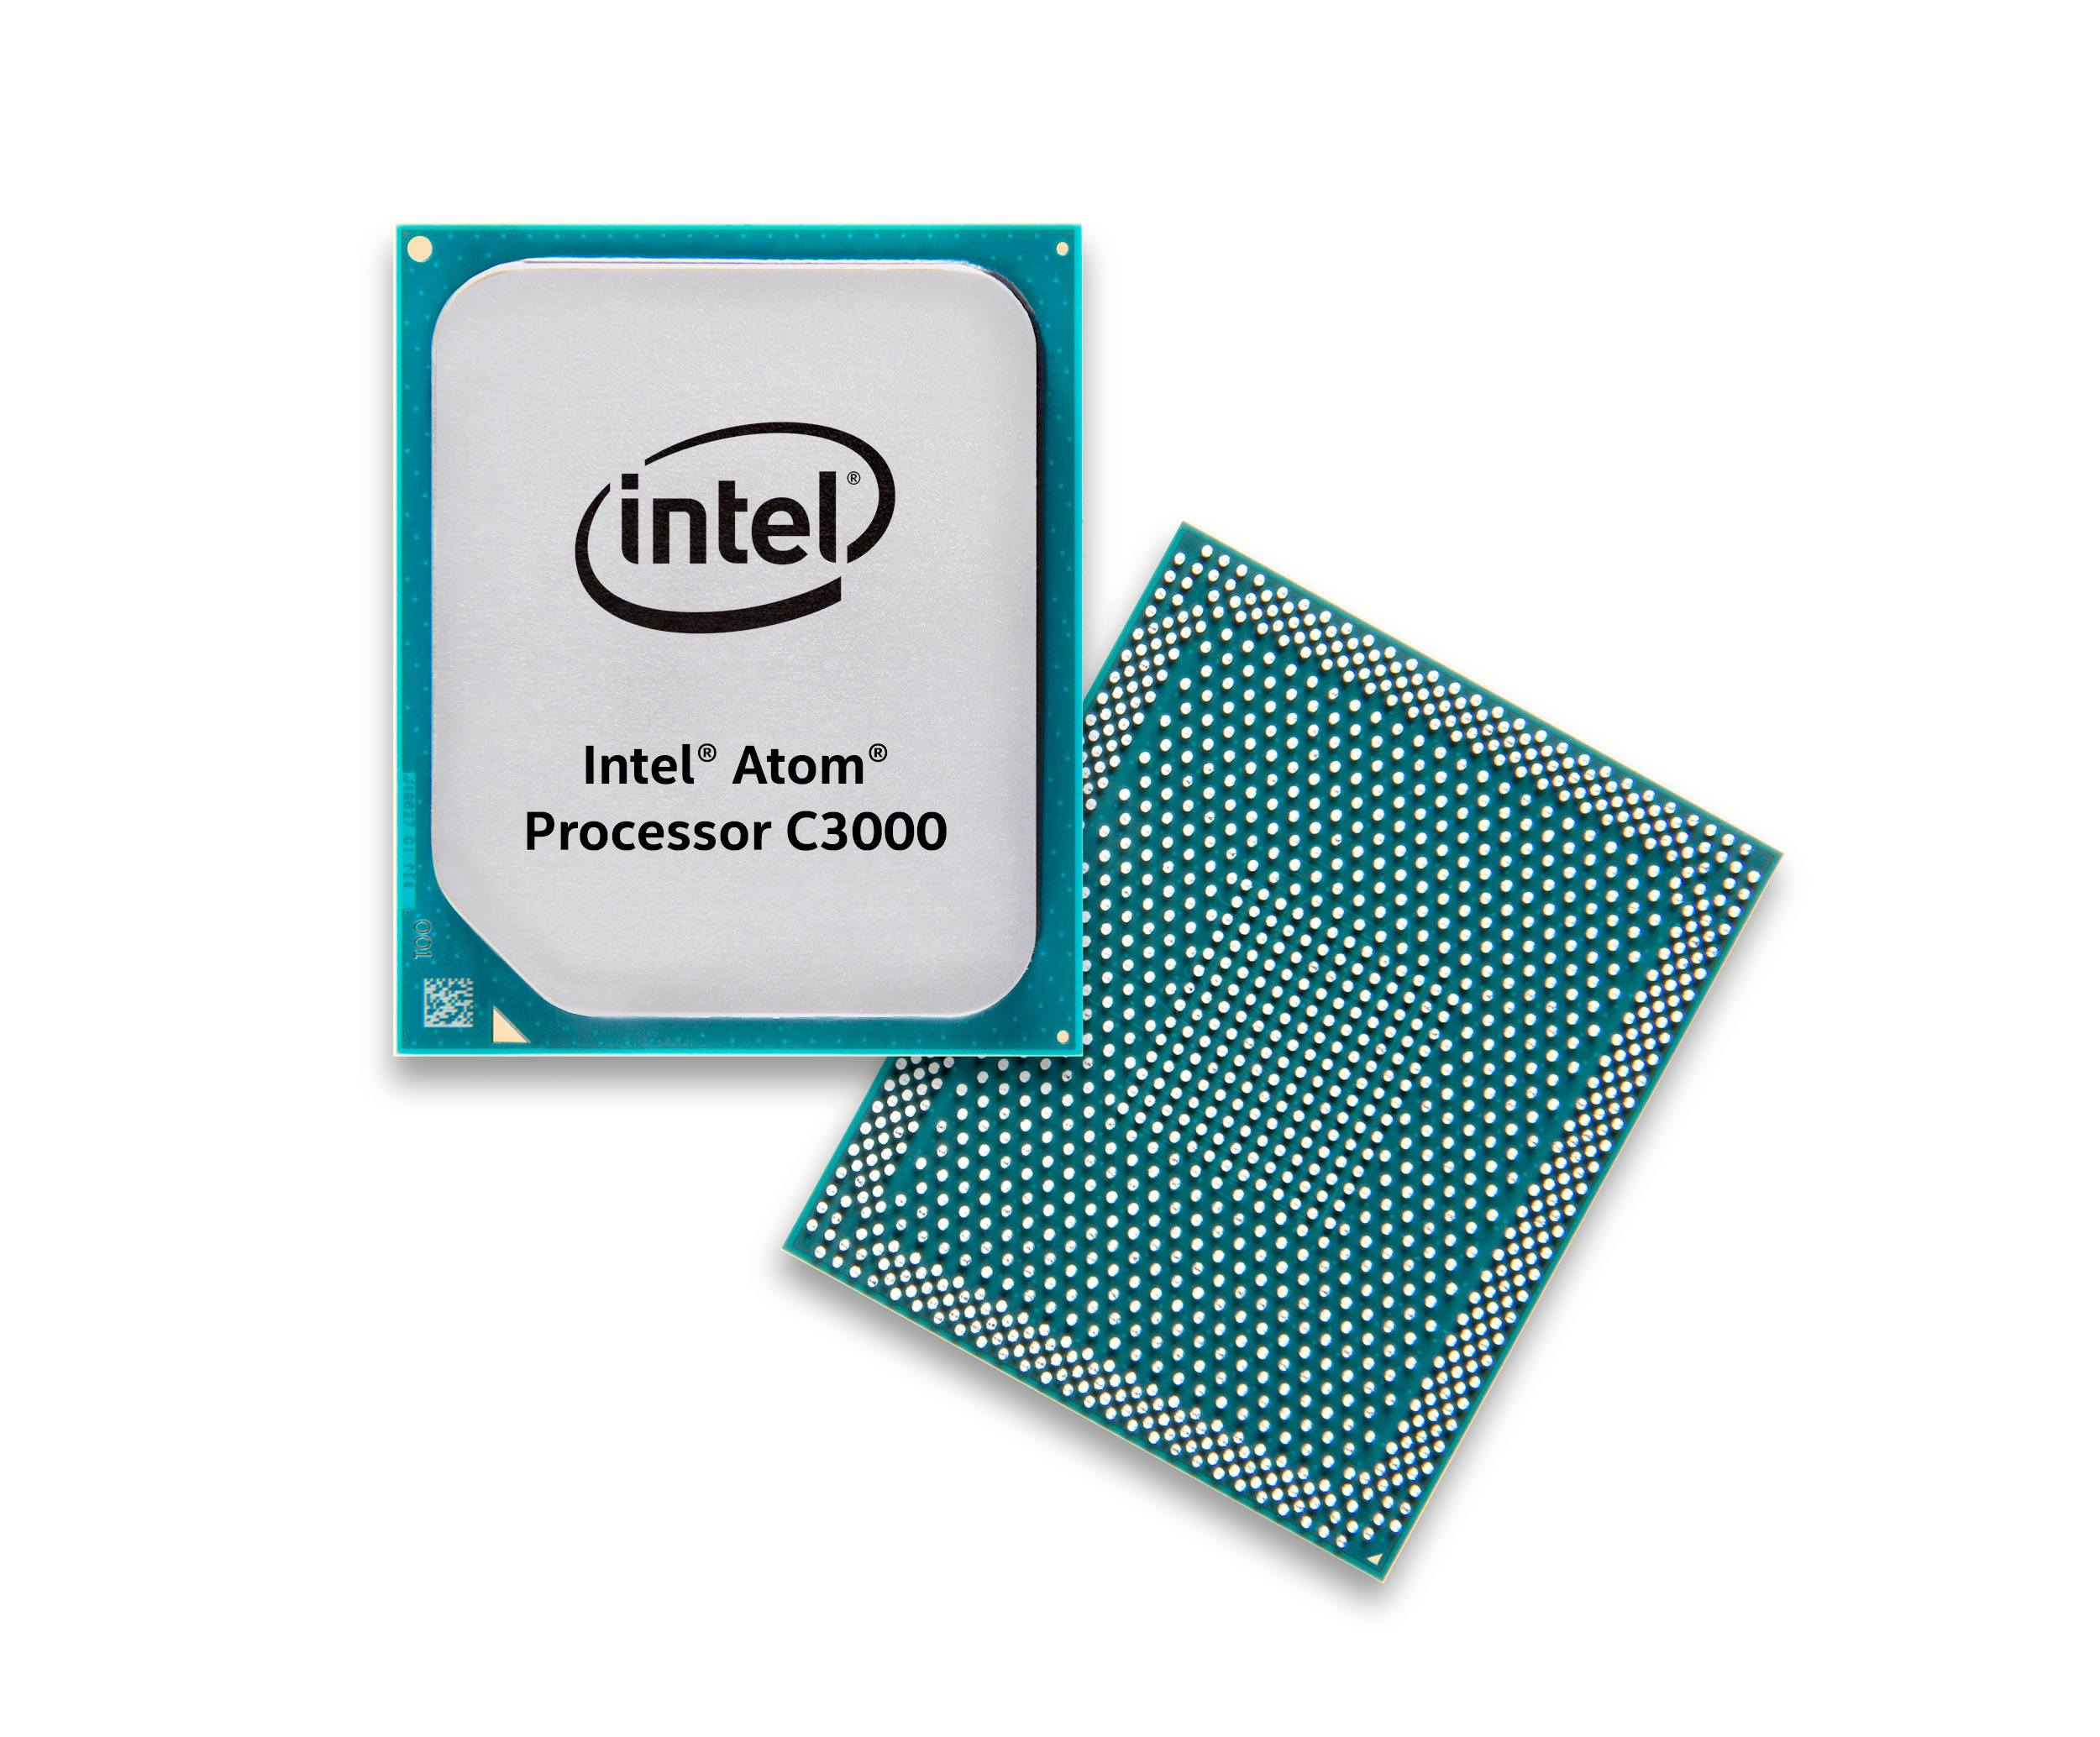 The Intel Atom Processor C3000 product family enables network edge device vendors to reach a wide range of power-performance points and integrates Intel QuickAssist technology for up to 20 Gbps crypto and compression acceleration. (Credit: Intel Corporation)